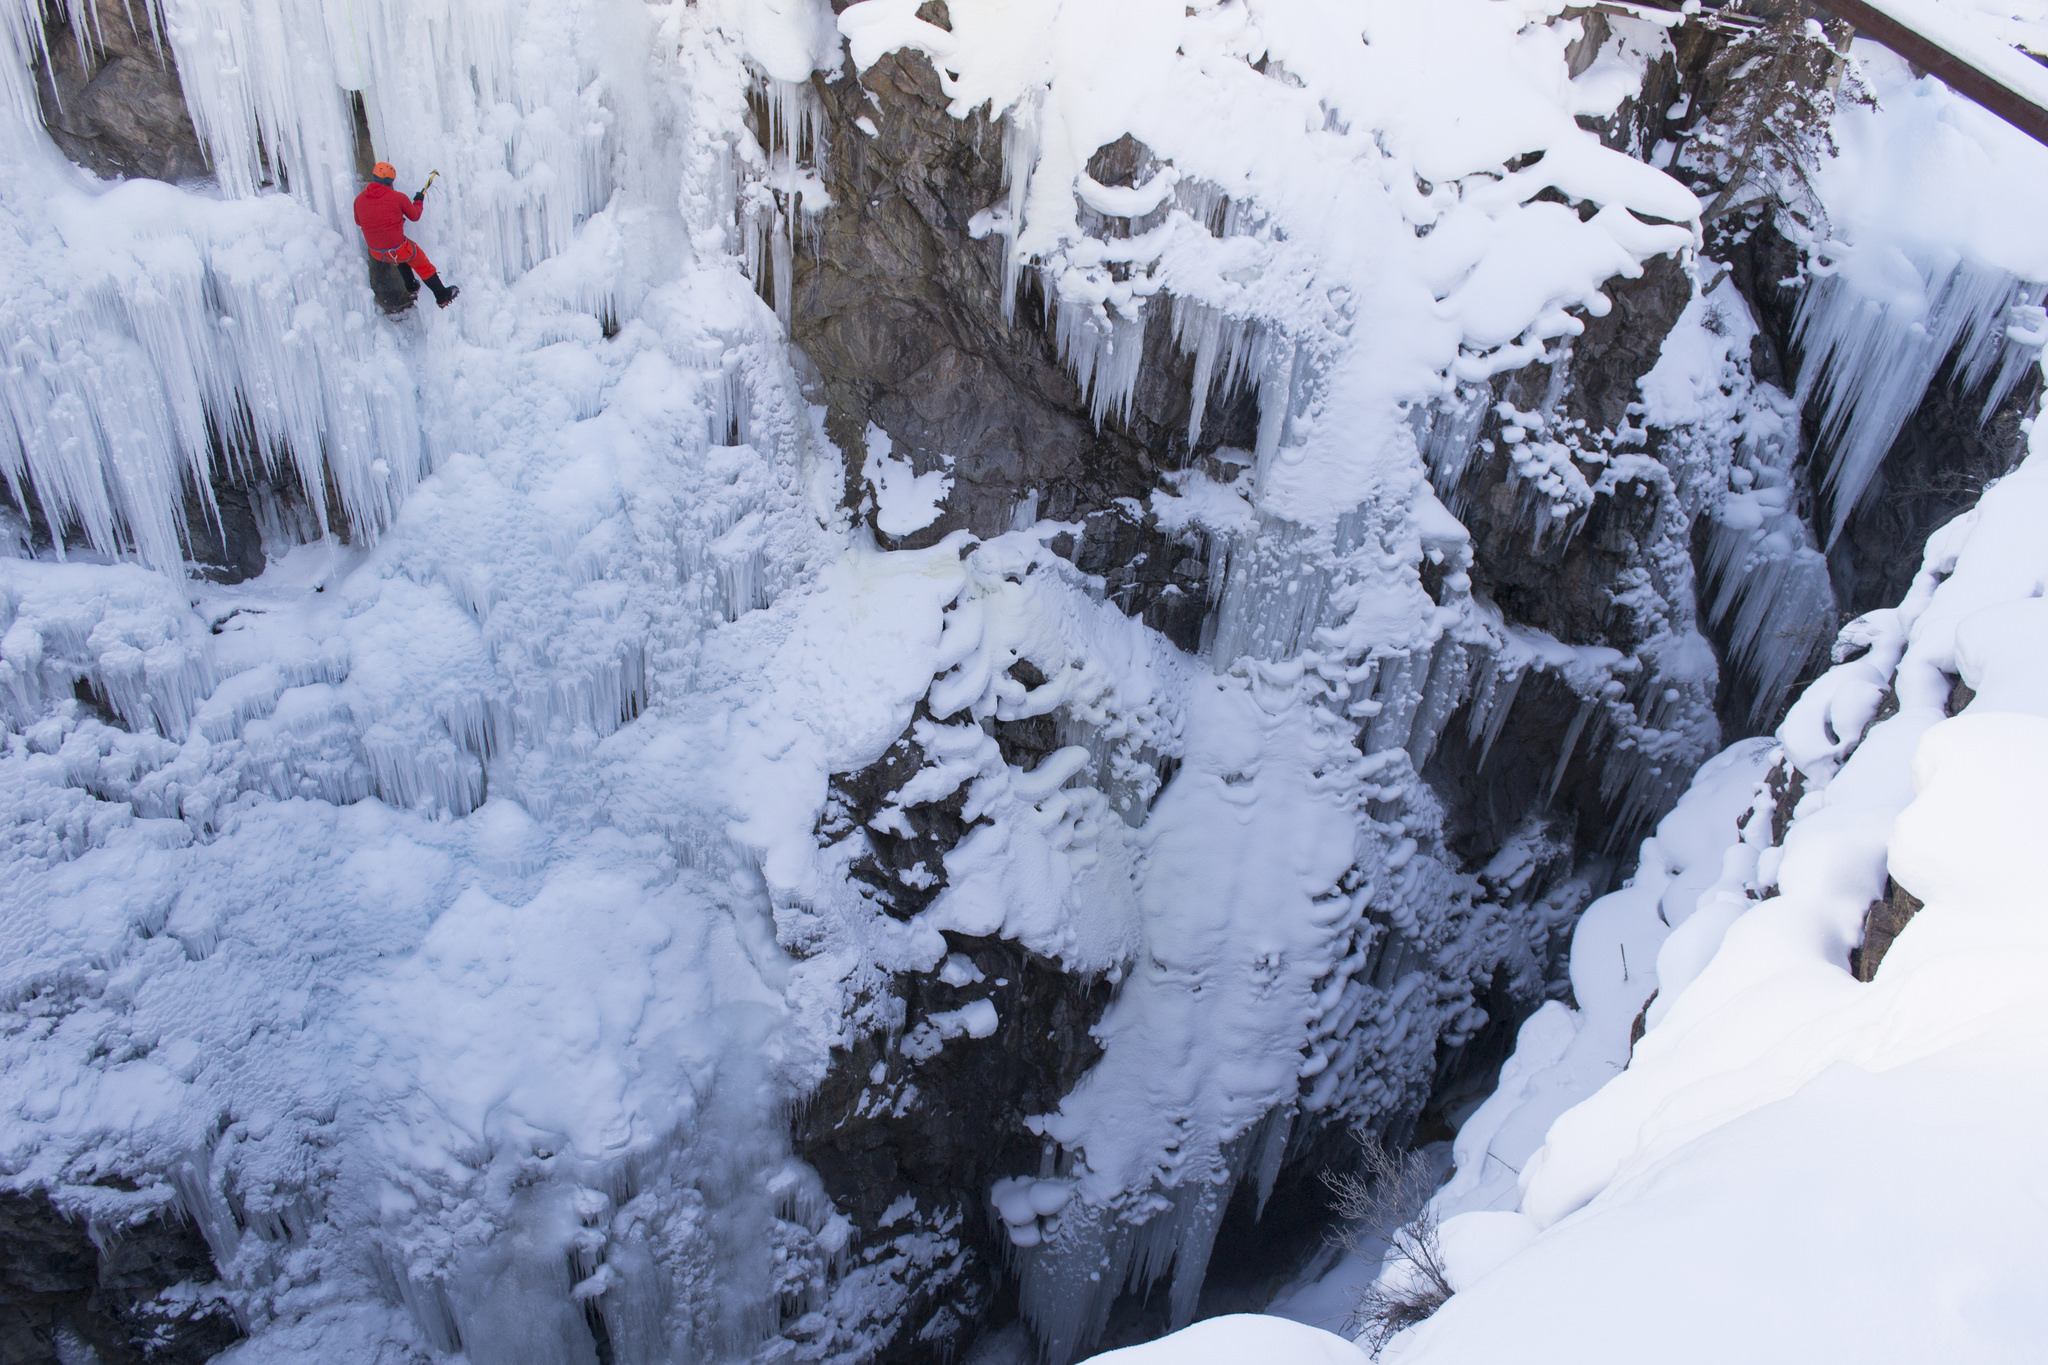 Artists watch as expert climbers navigate up the icy wall.